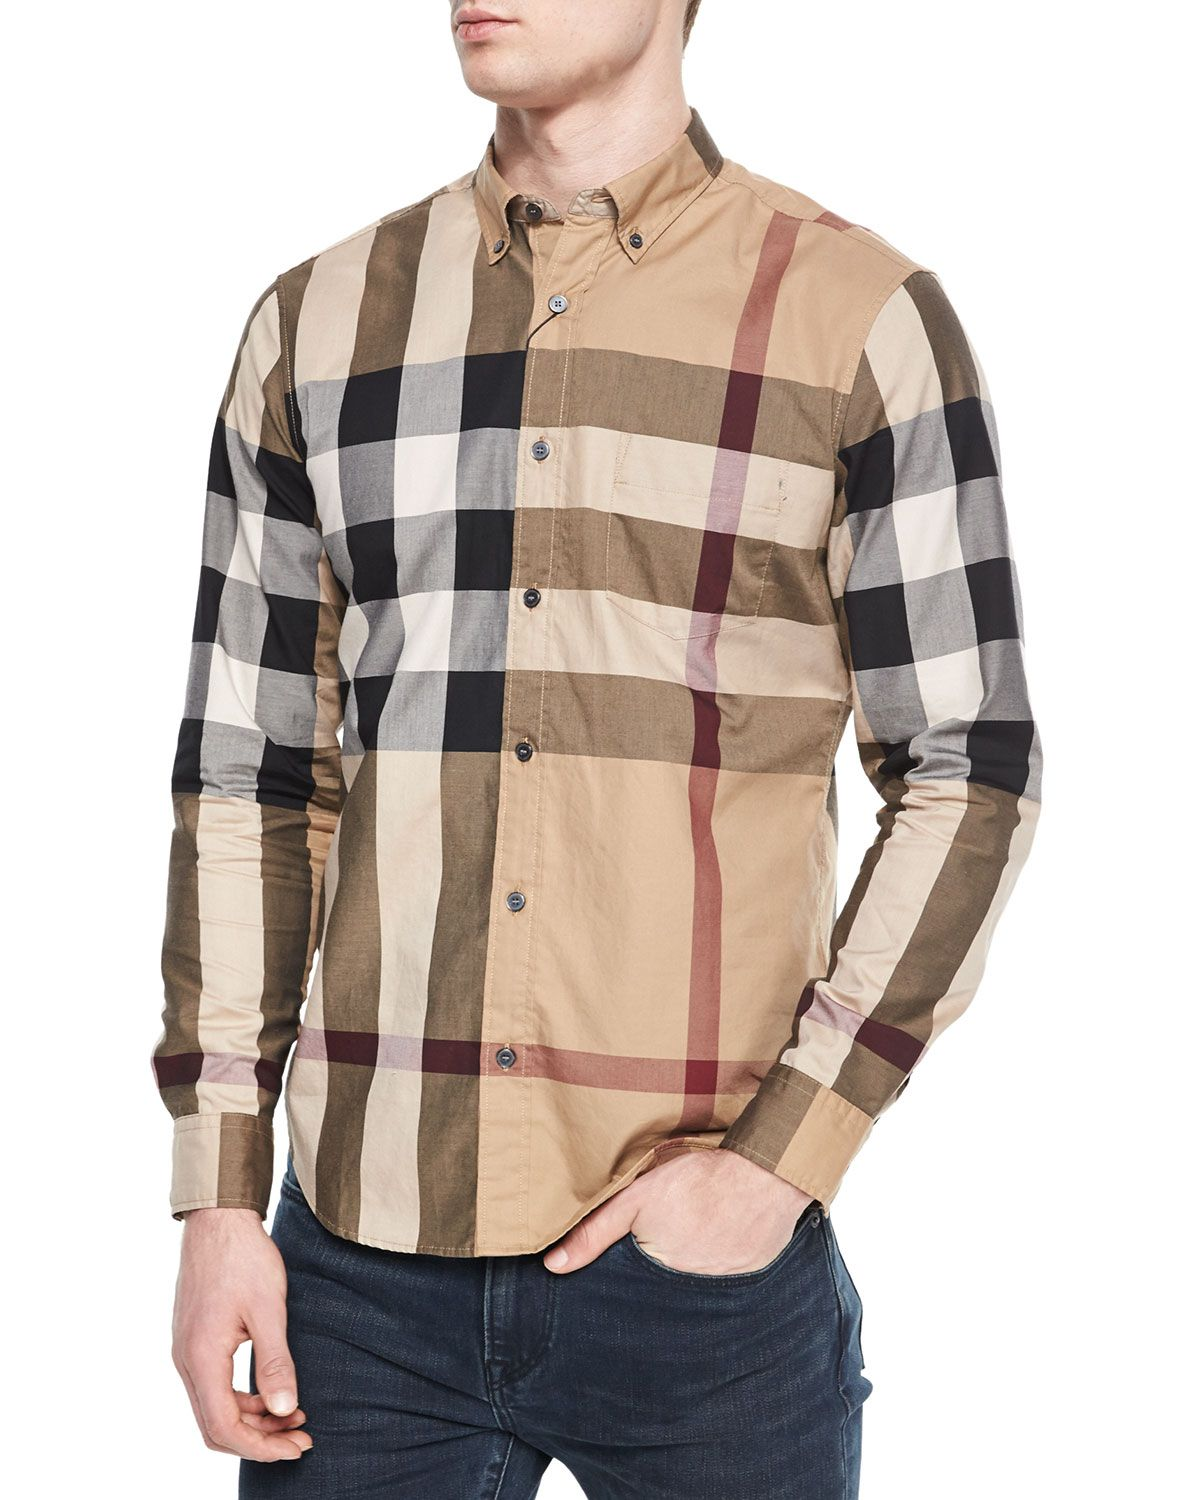 a7c36266f Fred Woven Check Sport Shirt, Tan, Men's, Size: XX-LARGE, Camel - Burberry  Brit